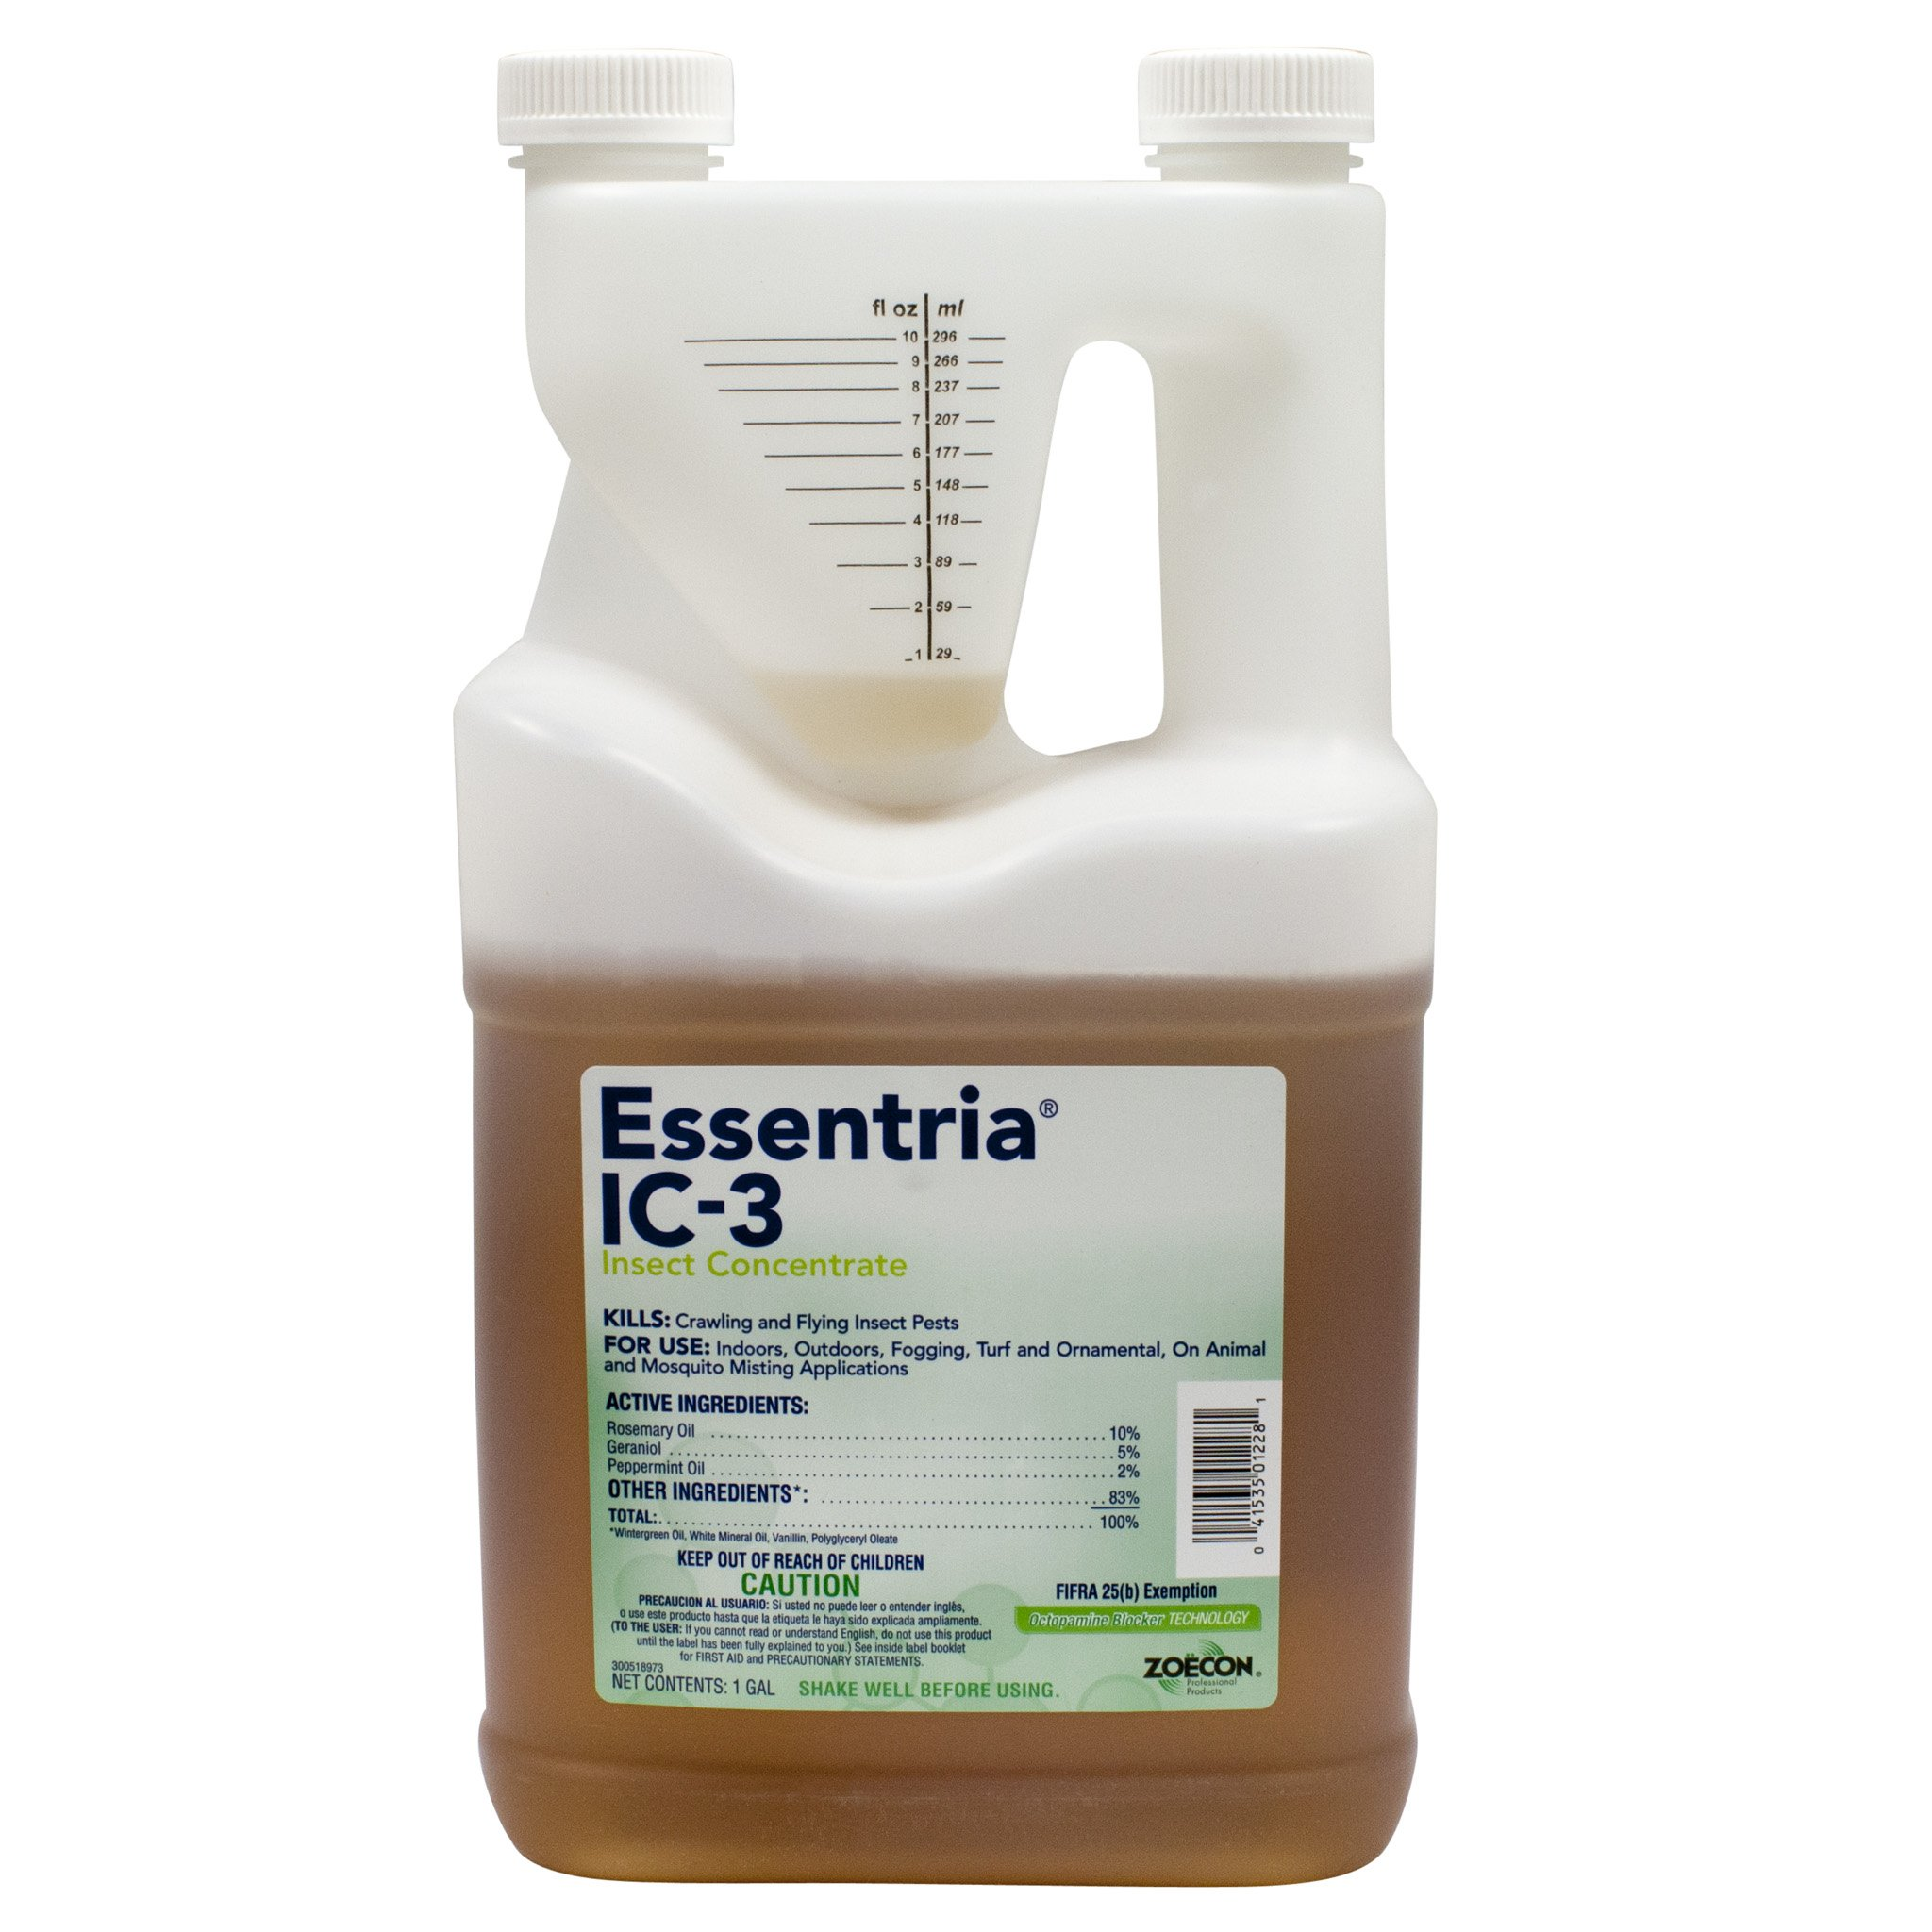 EcoEXEMPT® IC - 2 Insecticide Concentrate (1 gal.) 745866(Now Essentria IC3)